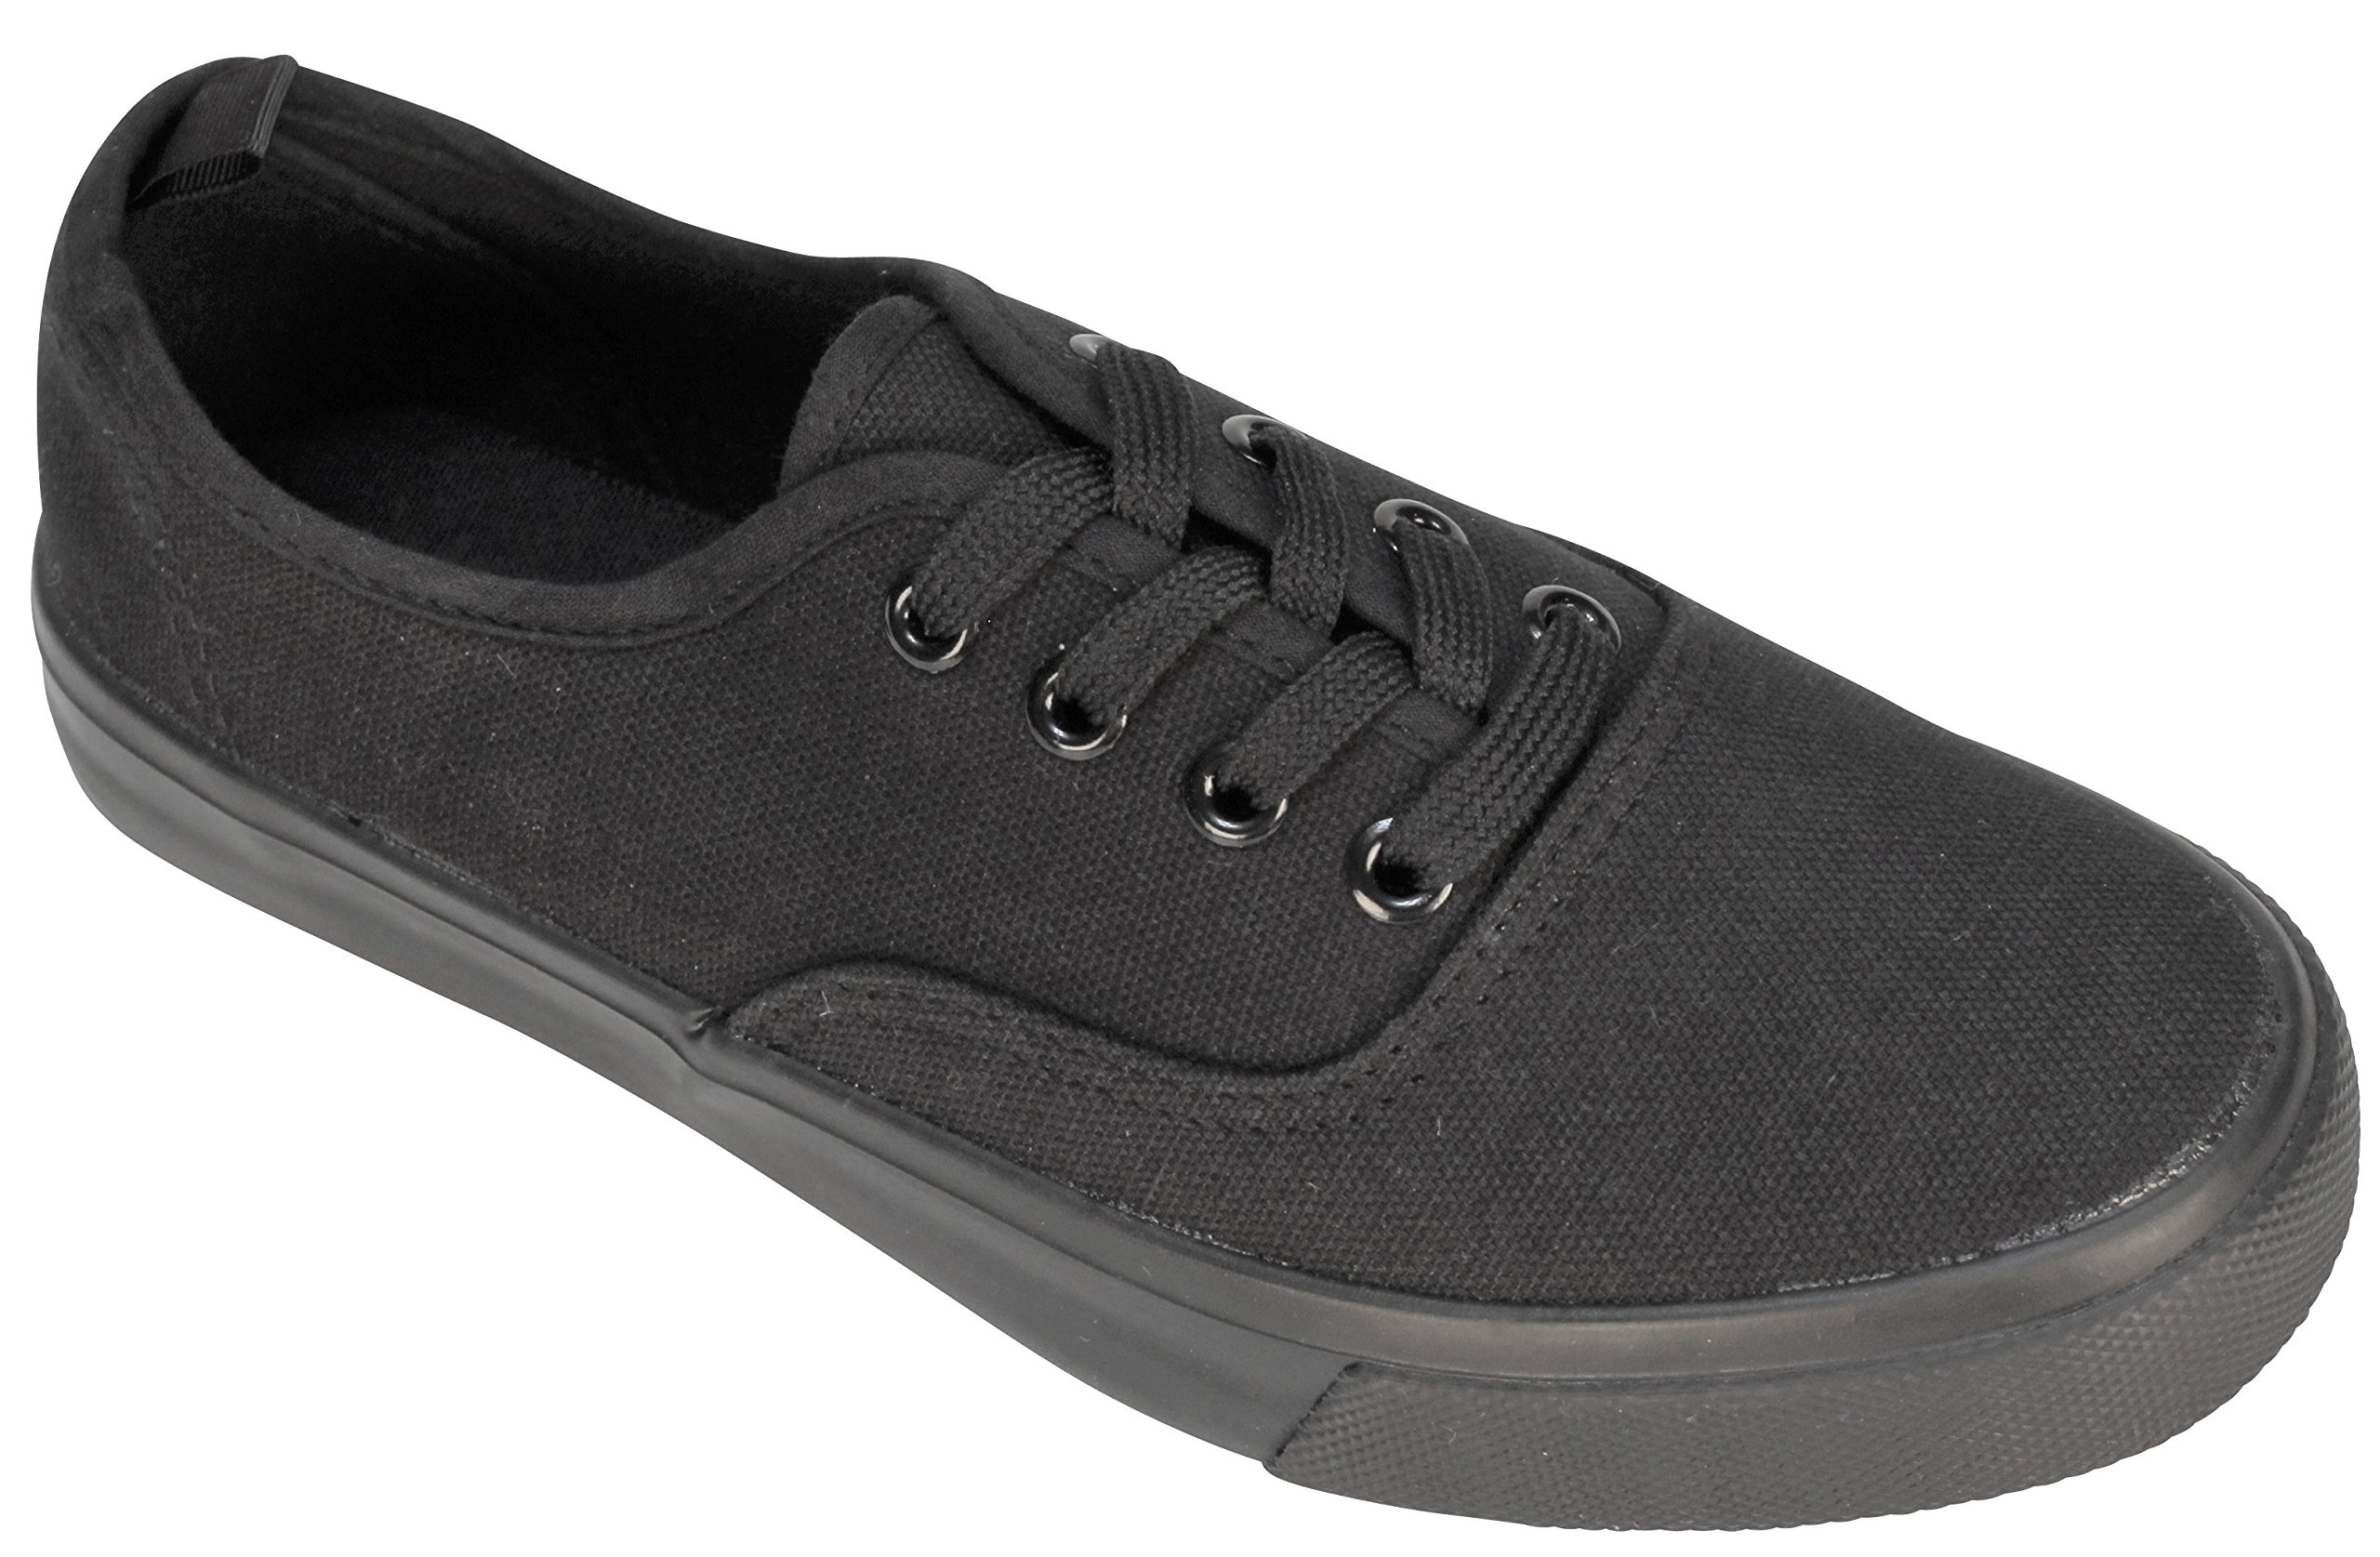 Take A Walk Lace Up for Women - Many Styles Avail. (10, Black/Black)